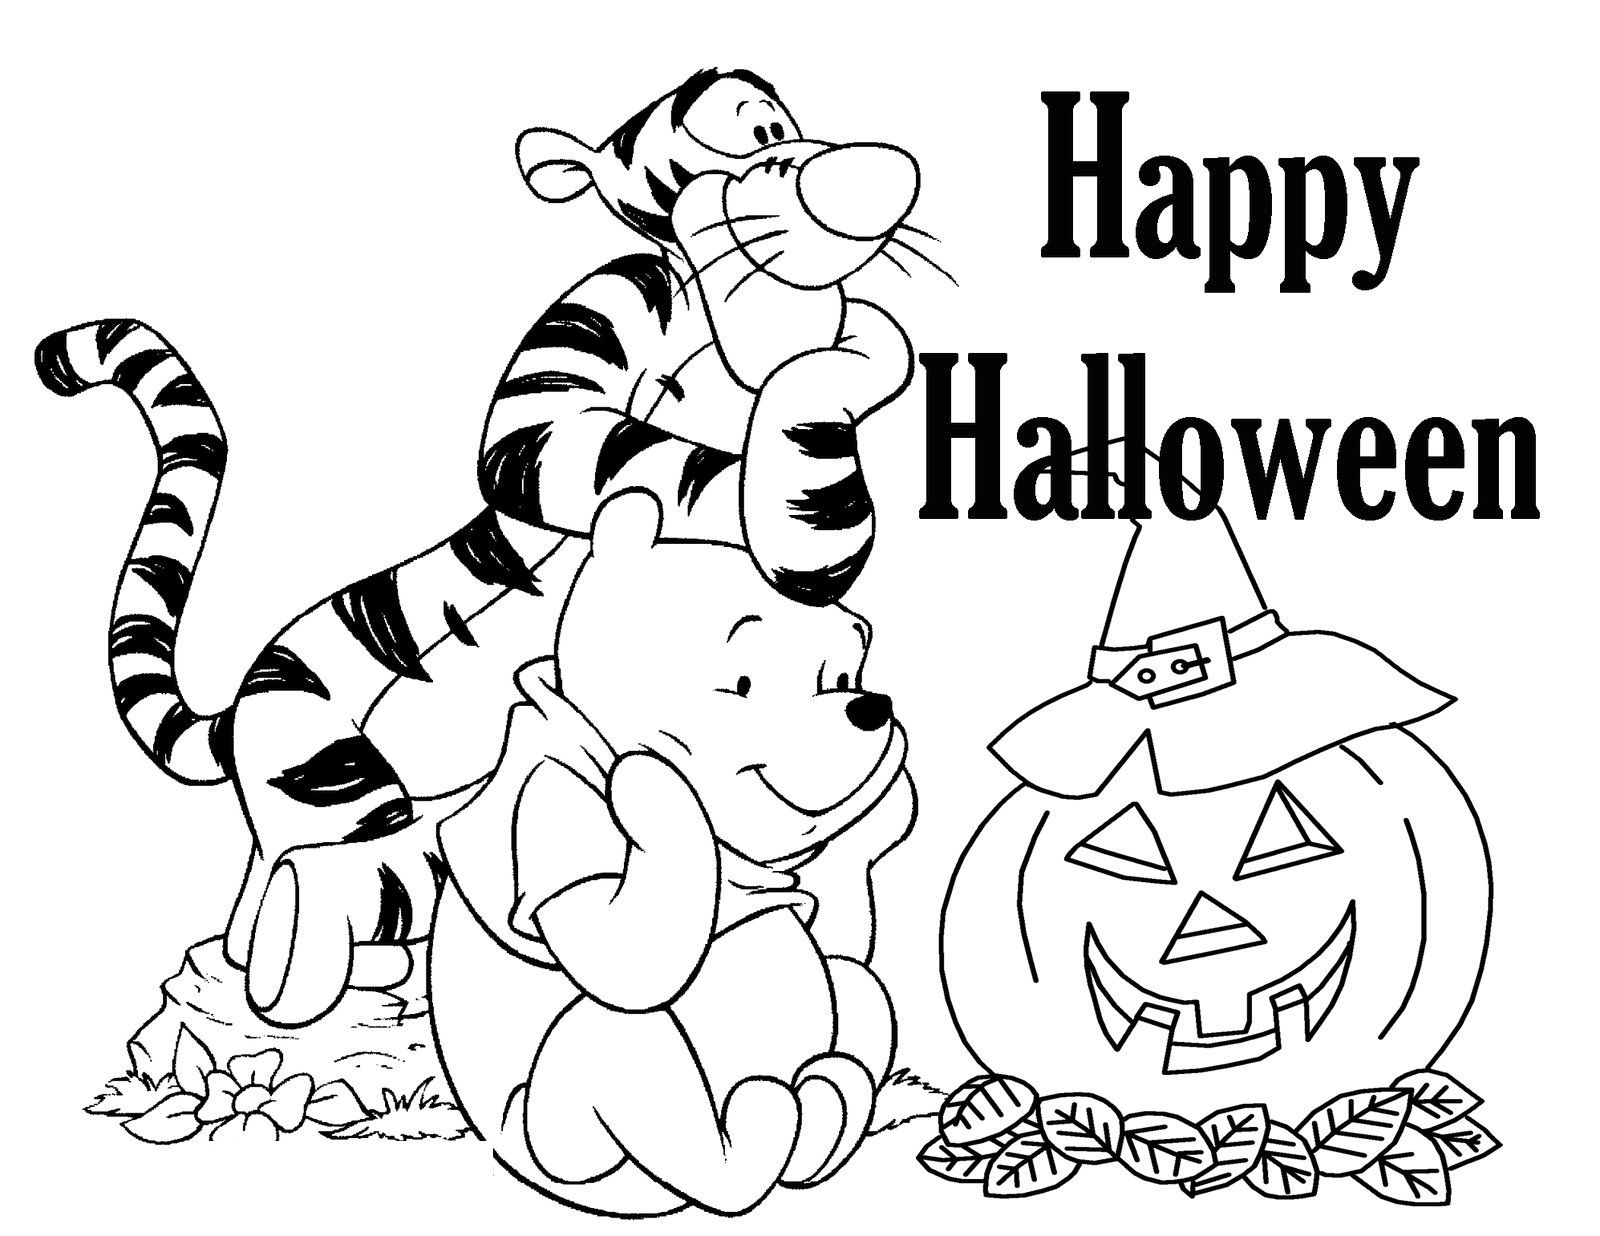 Halloween Cartoon Character Coloring Pages Halloween Coloring Sheets Halloween Coloring Pictures Halloween Coloring Pages